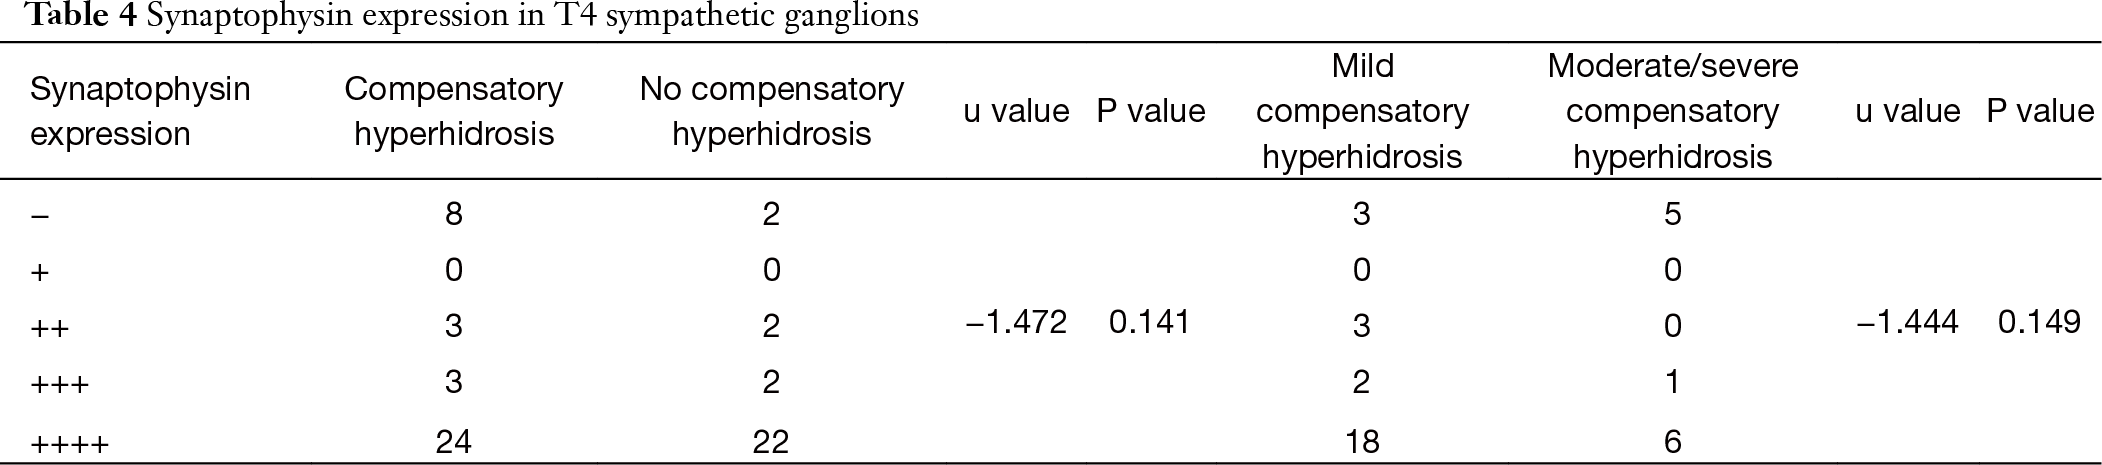 Is compensatory hyperhidrosis after thoracic sympathicotomy